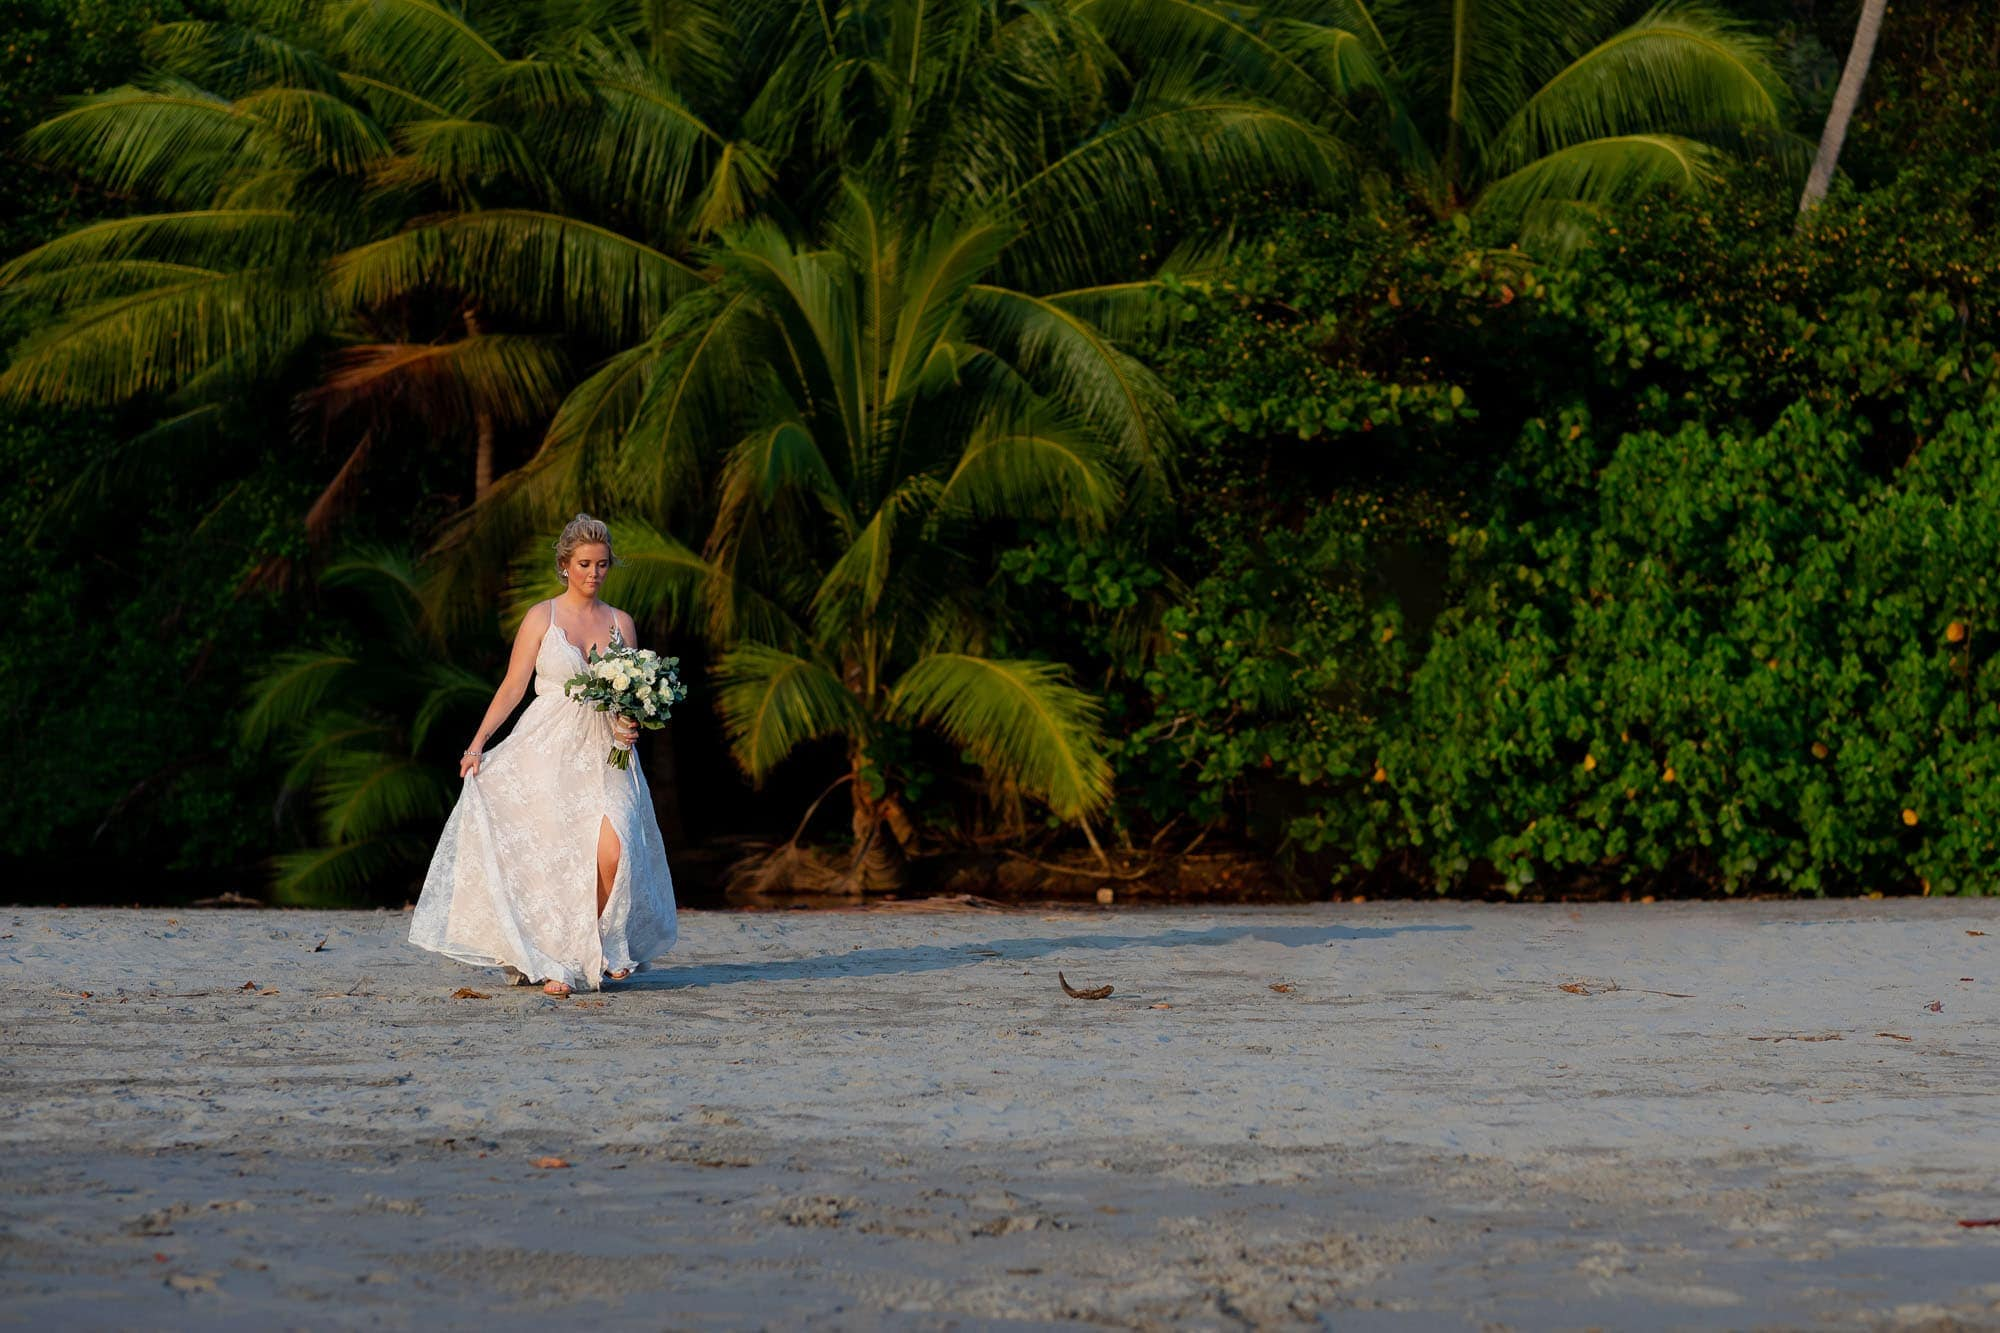 The bride arriving at the ceremony location on the beach